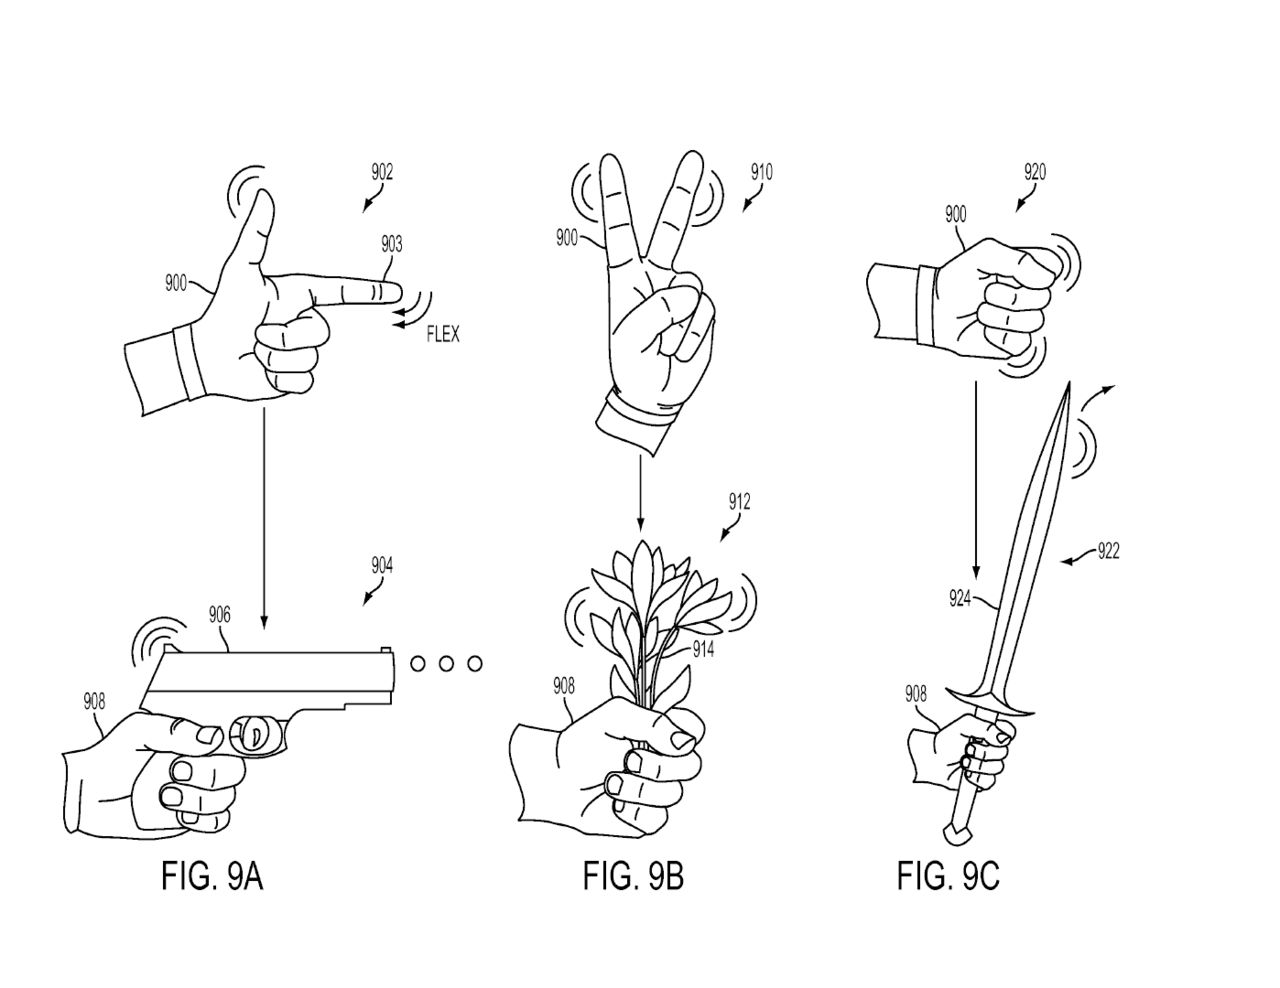 Sony File Patent For New PlayStation Glove Controller